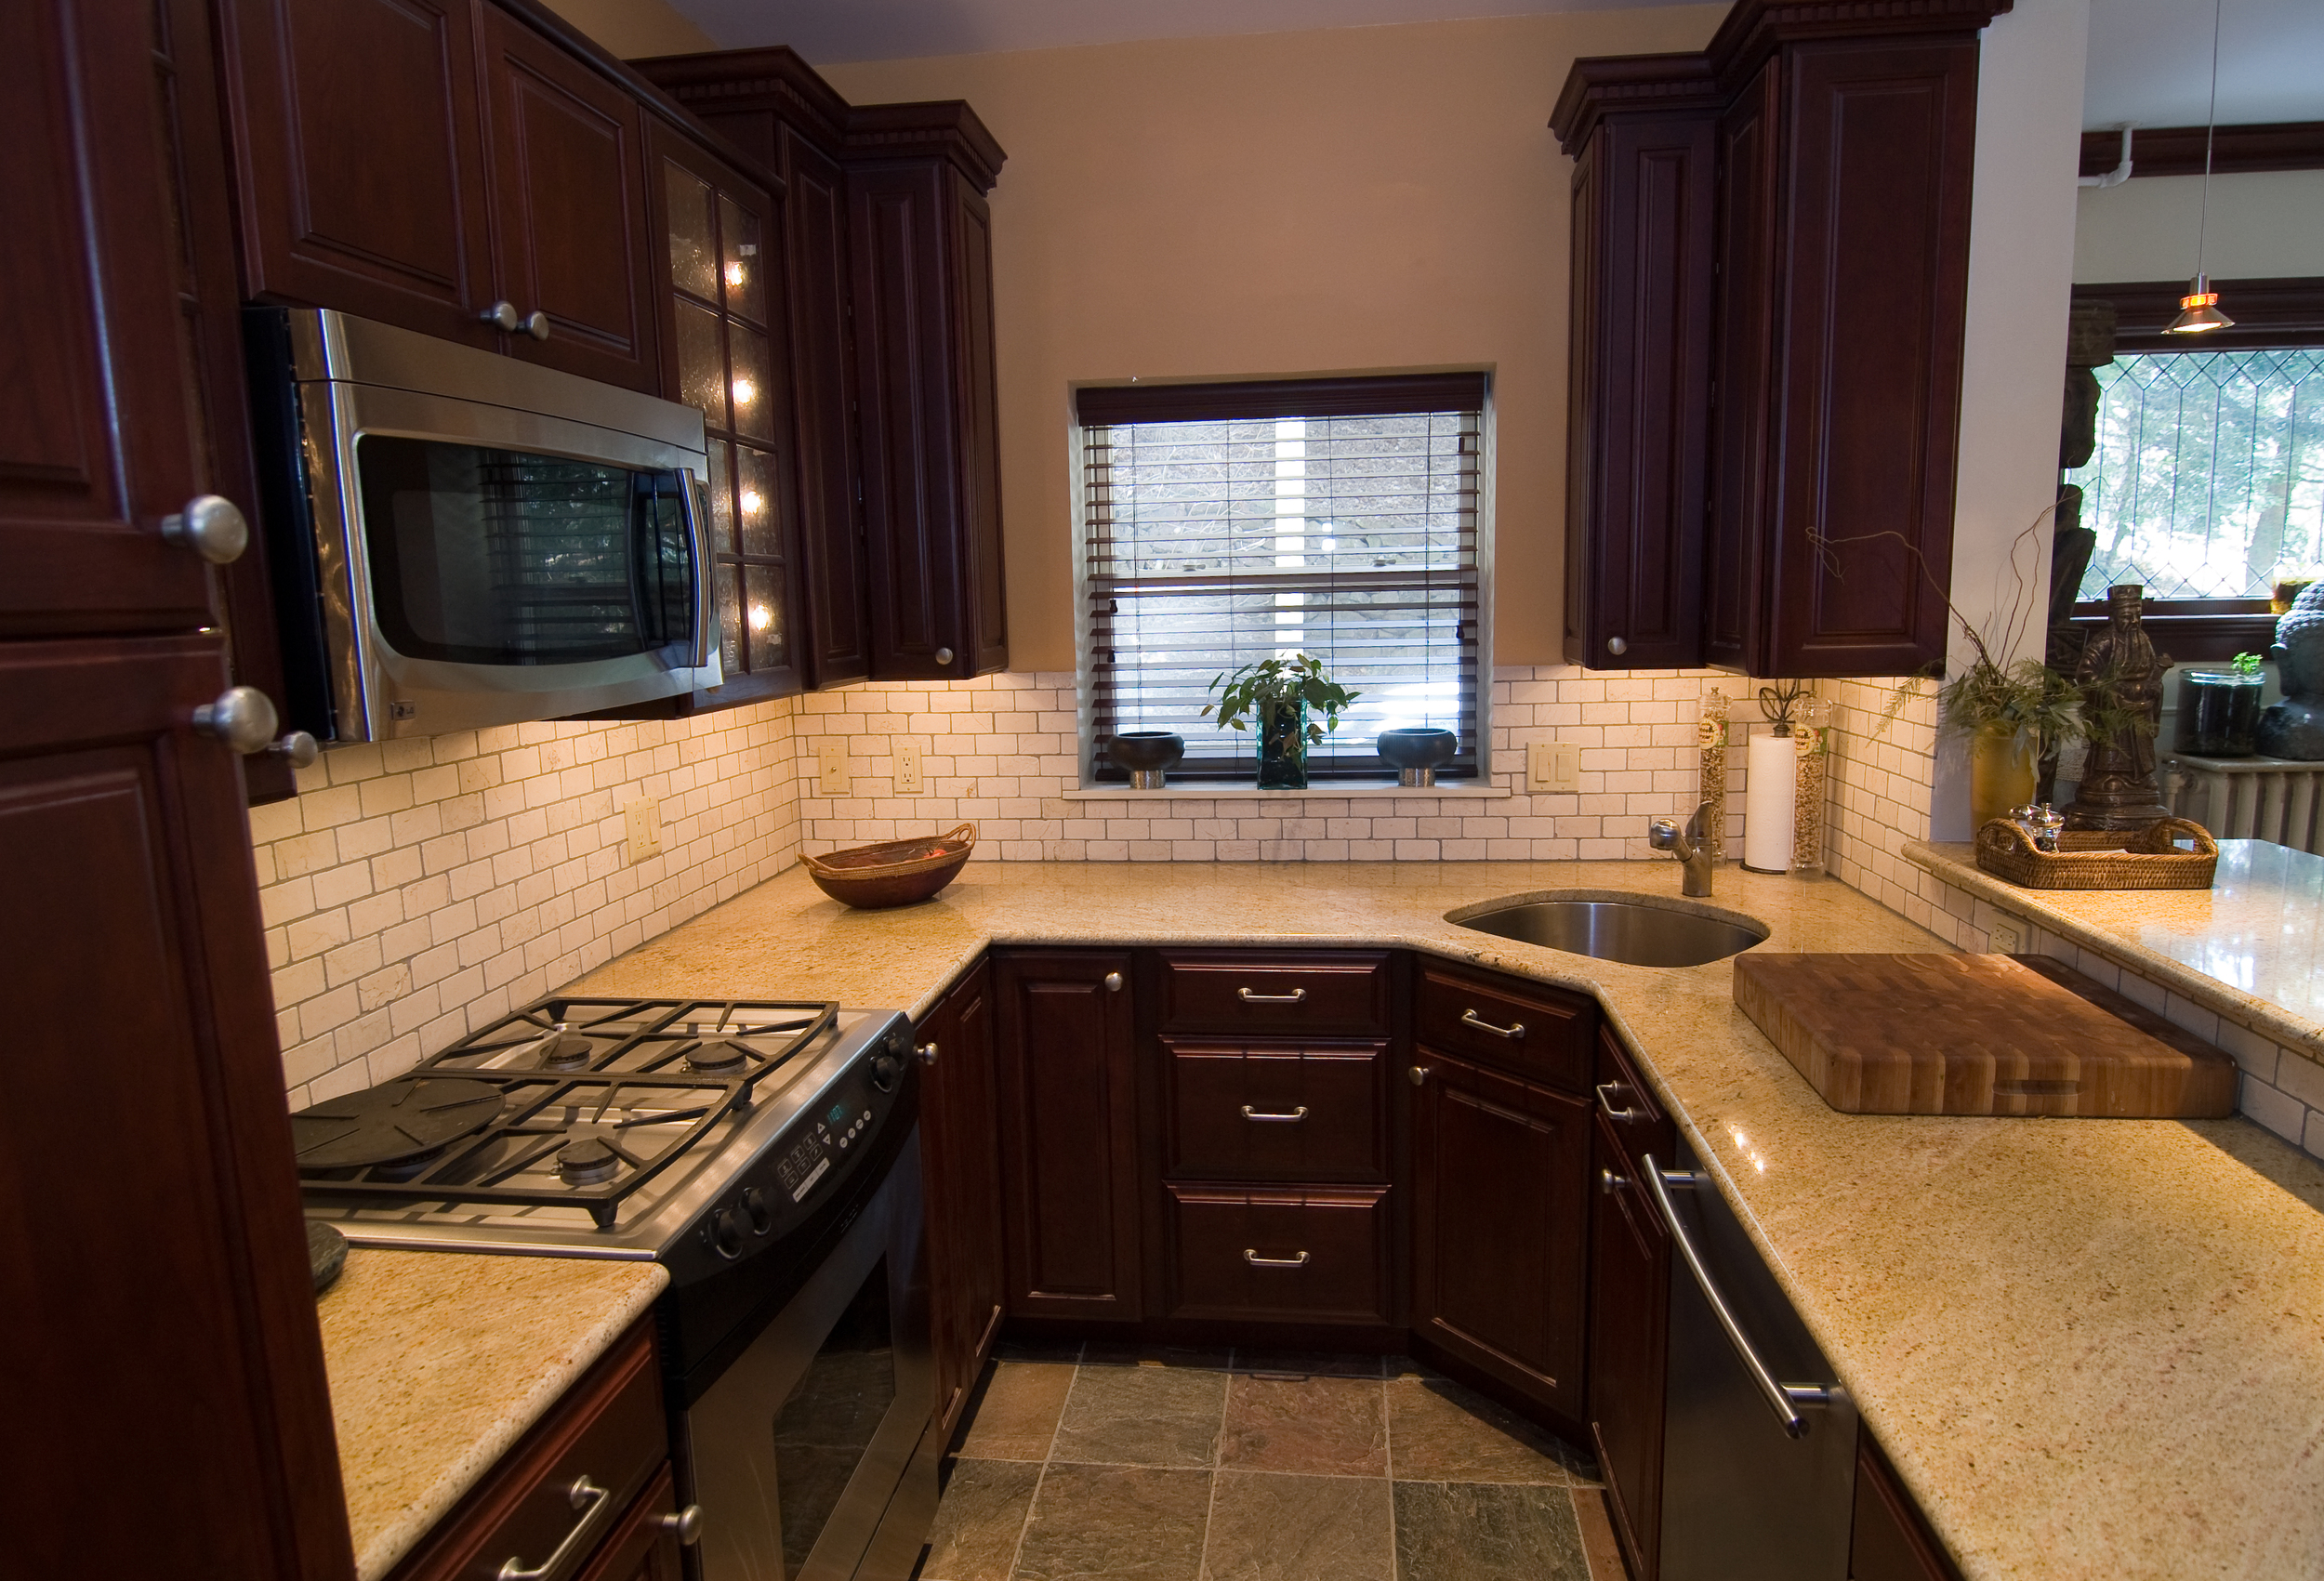 A perfect contrast of dark cabinetry and light earth toned countertop for this small kitchen space